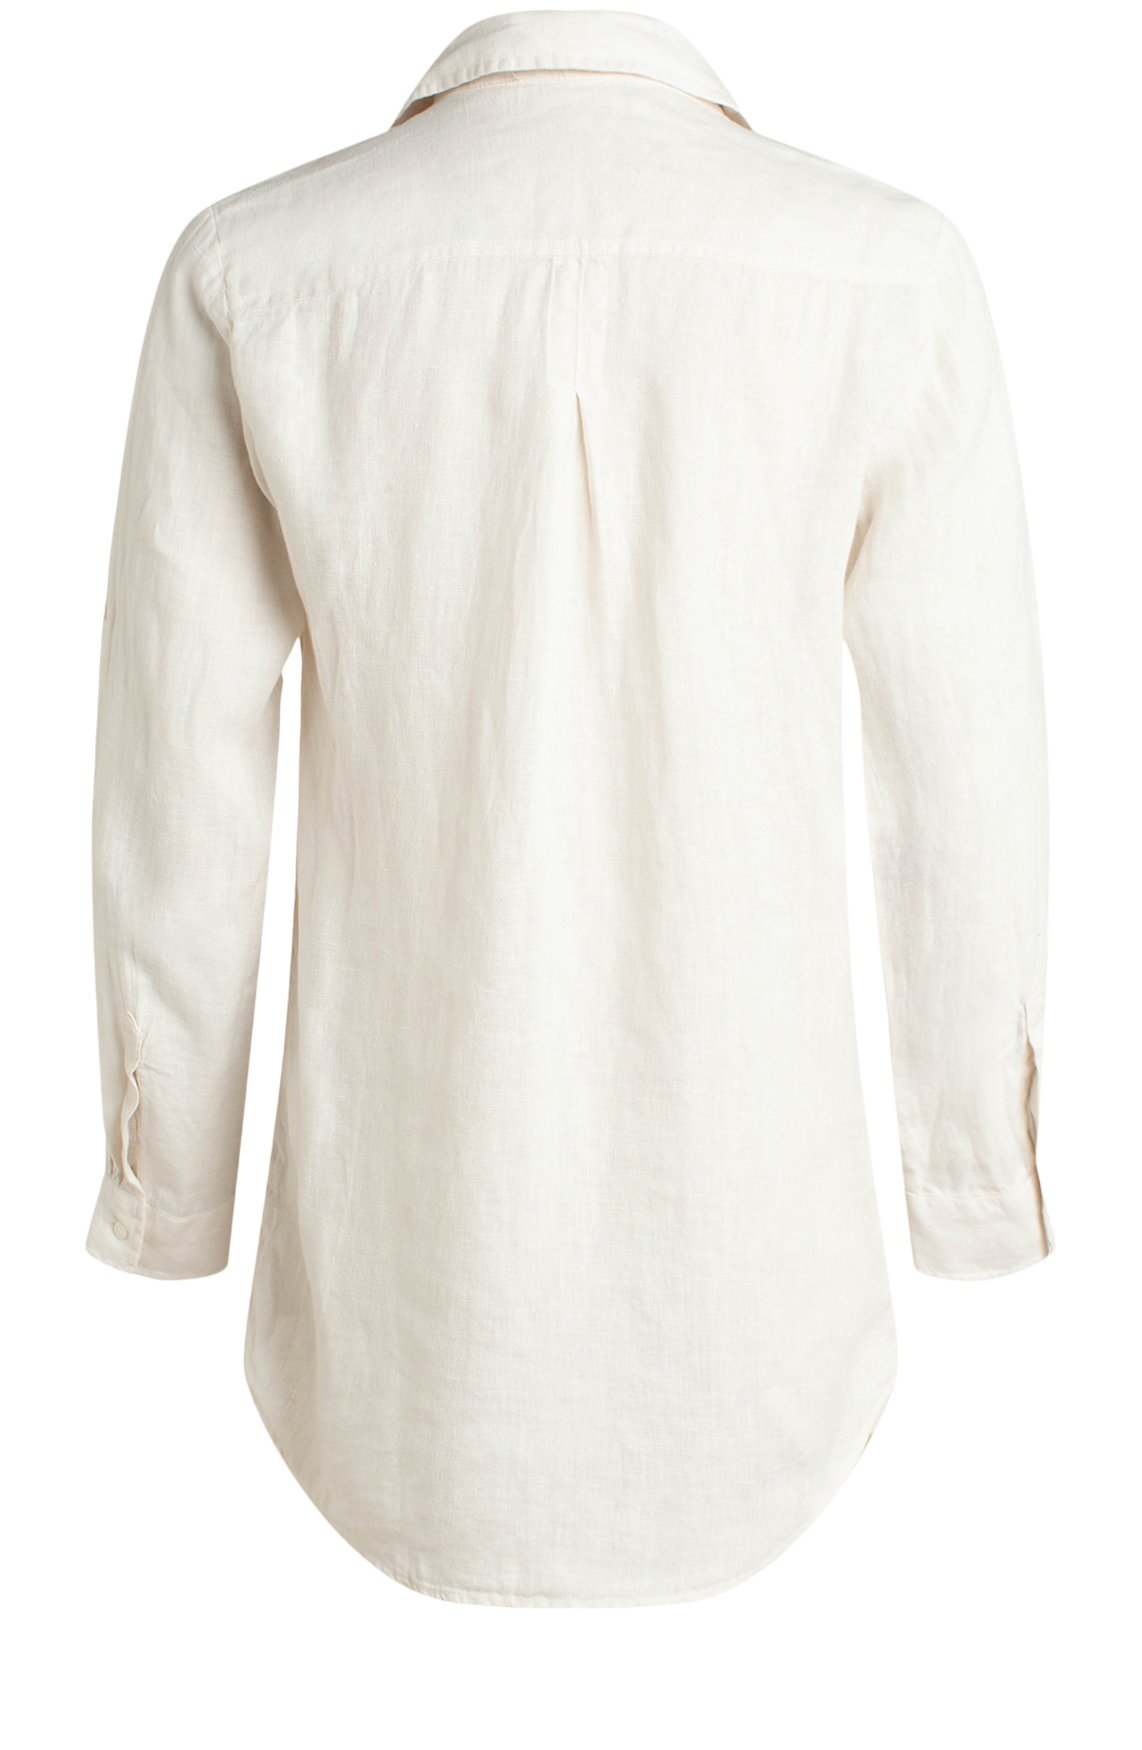 Moscow Dames Linen blouse wit